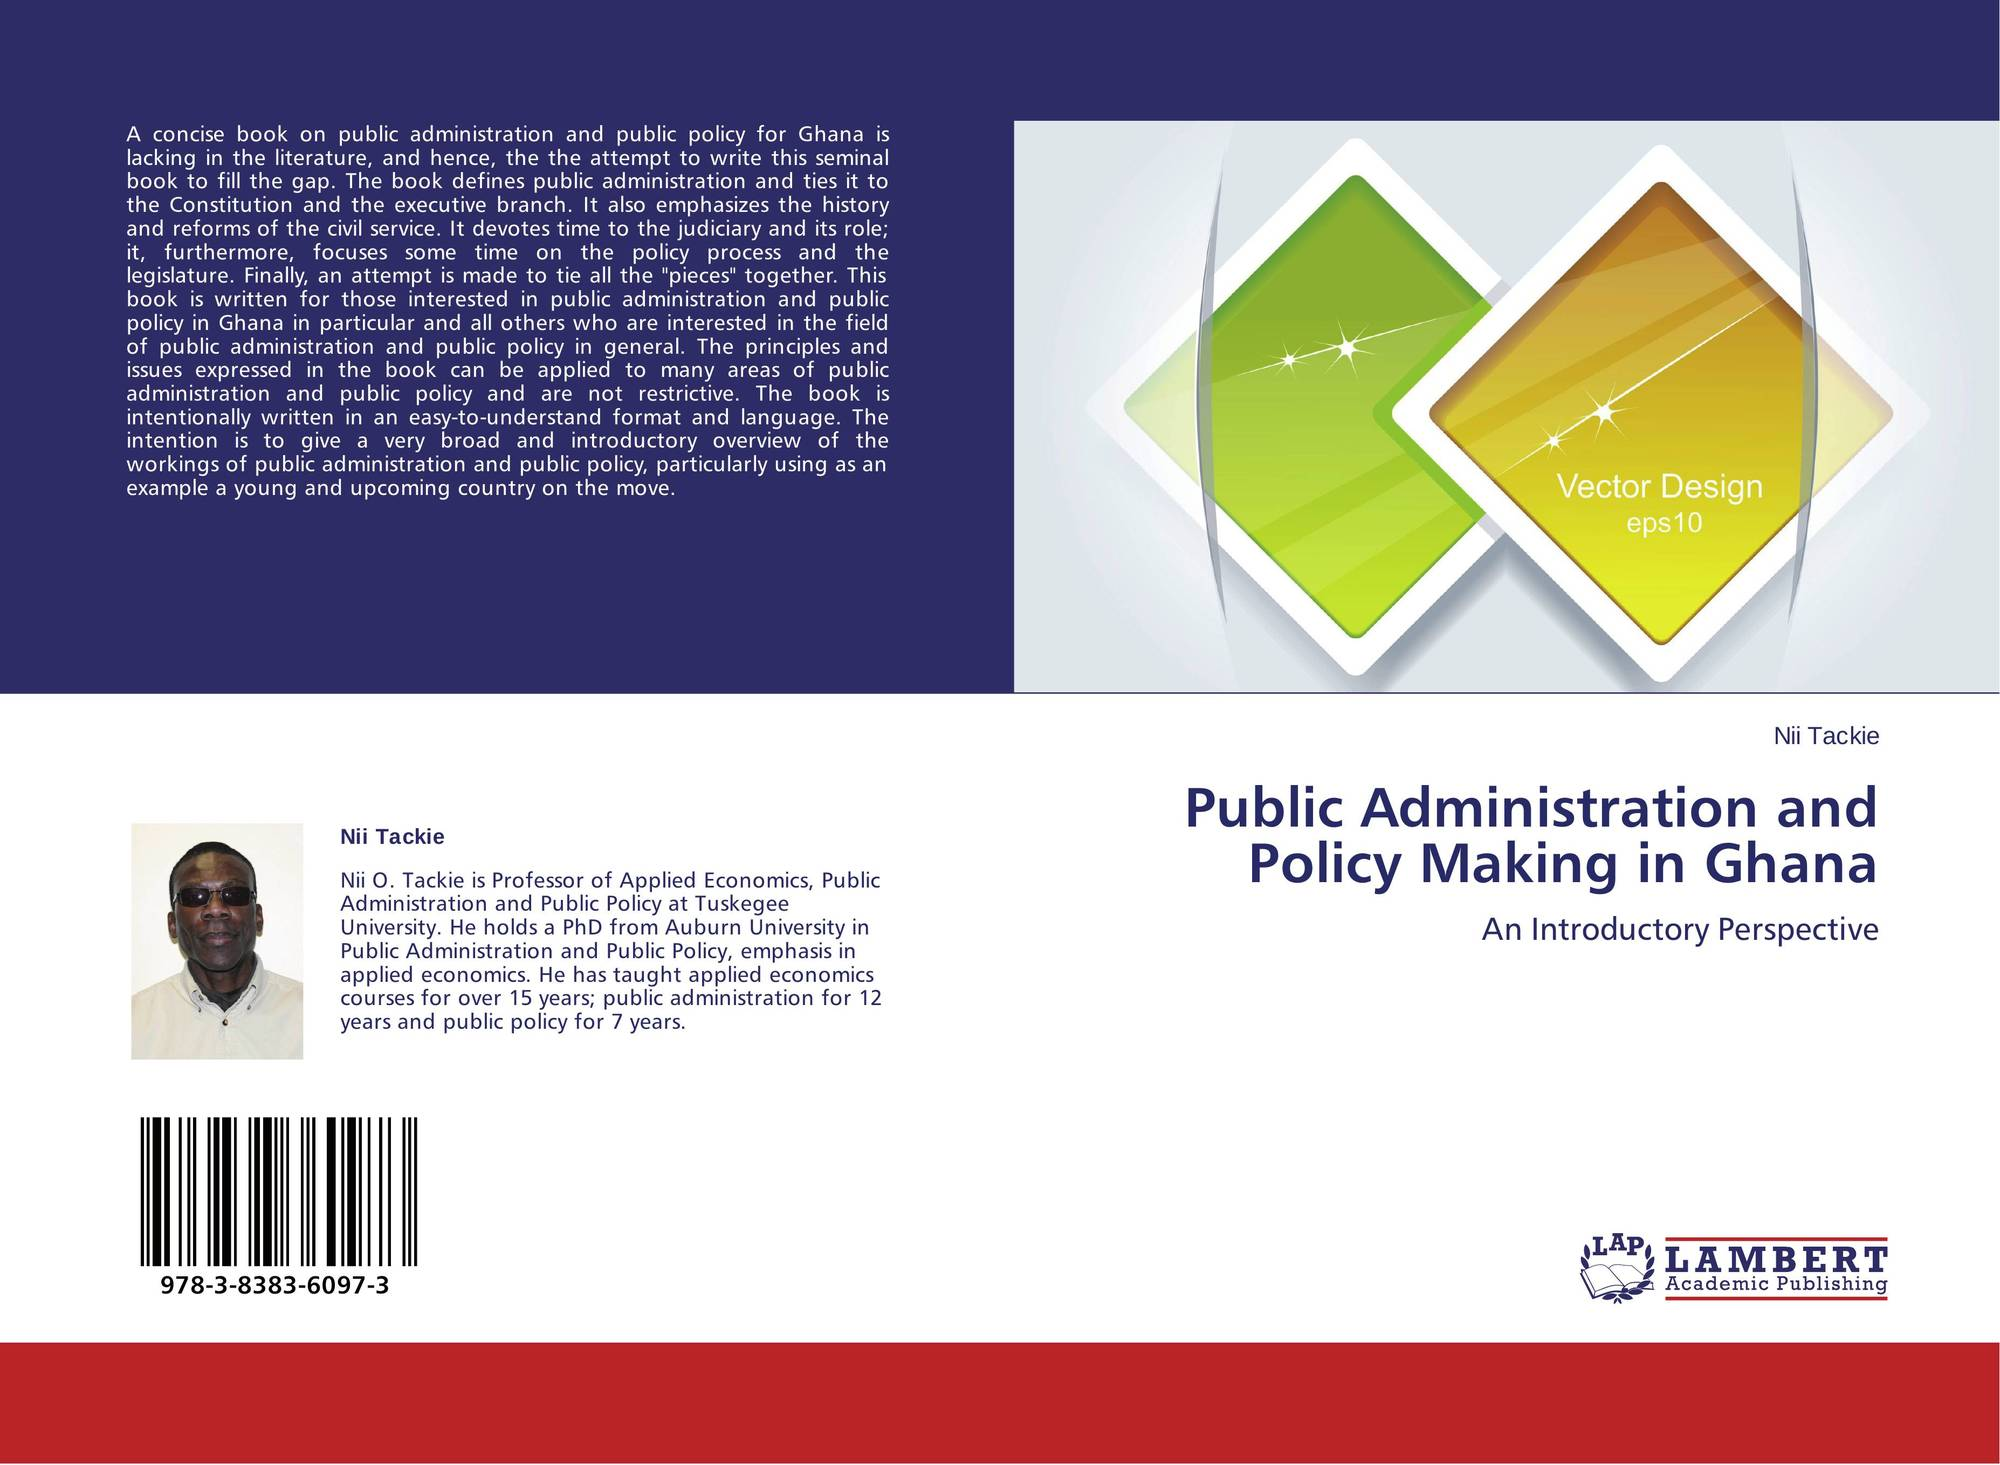 public administration system in ghana - administrative system of accountability and control the constitution provides for an audit service, which is independent of the executive arm of the state and which reports 81- adaptation of the public administration in ghana to the needs of economic globalization.